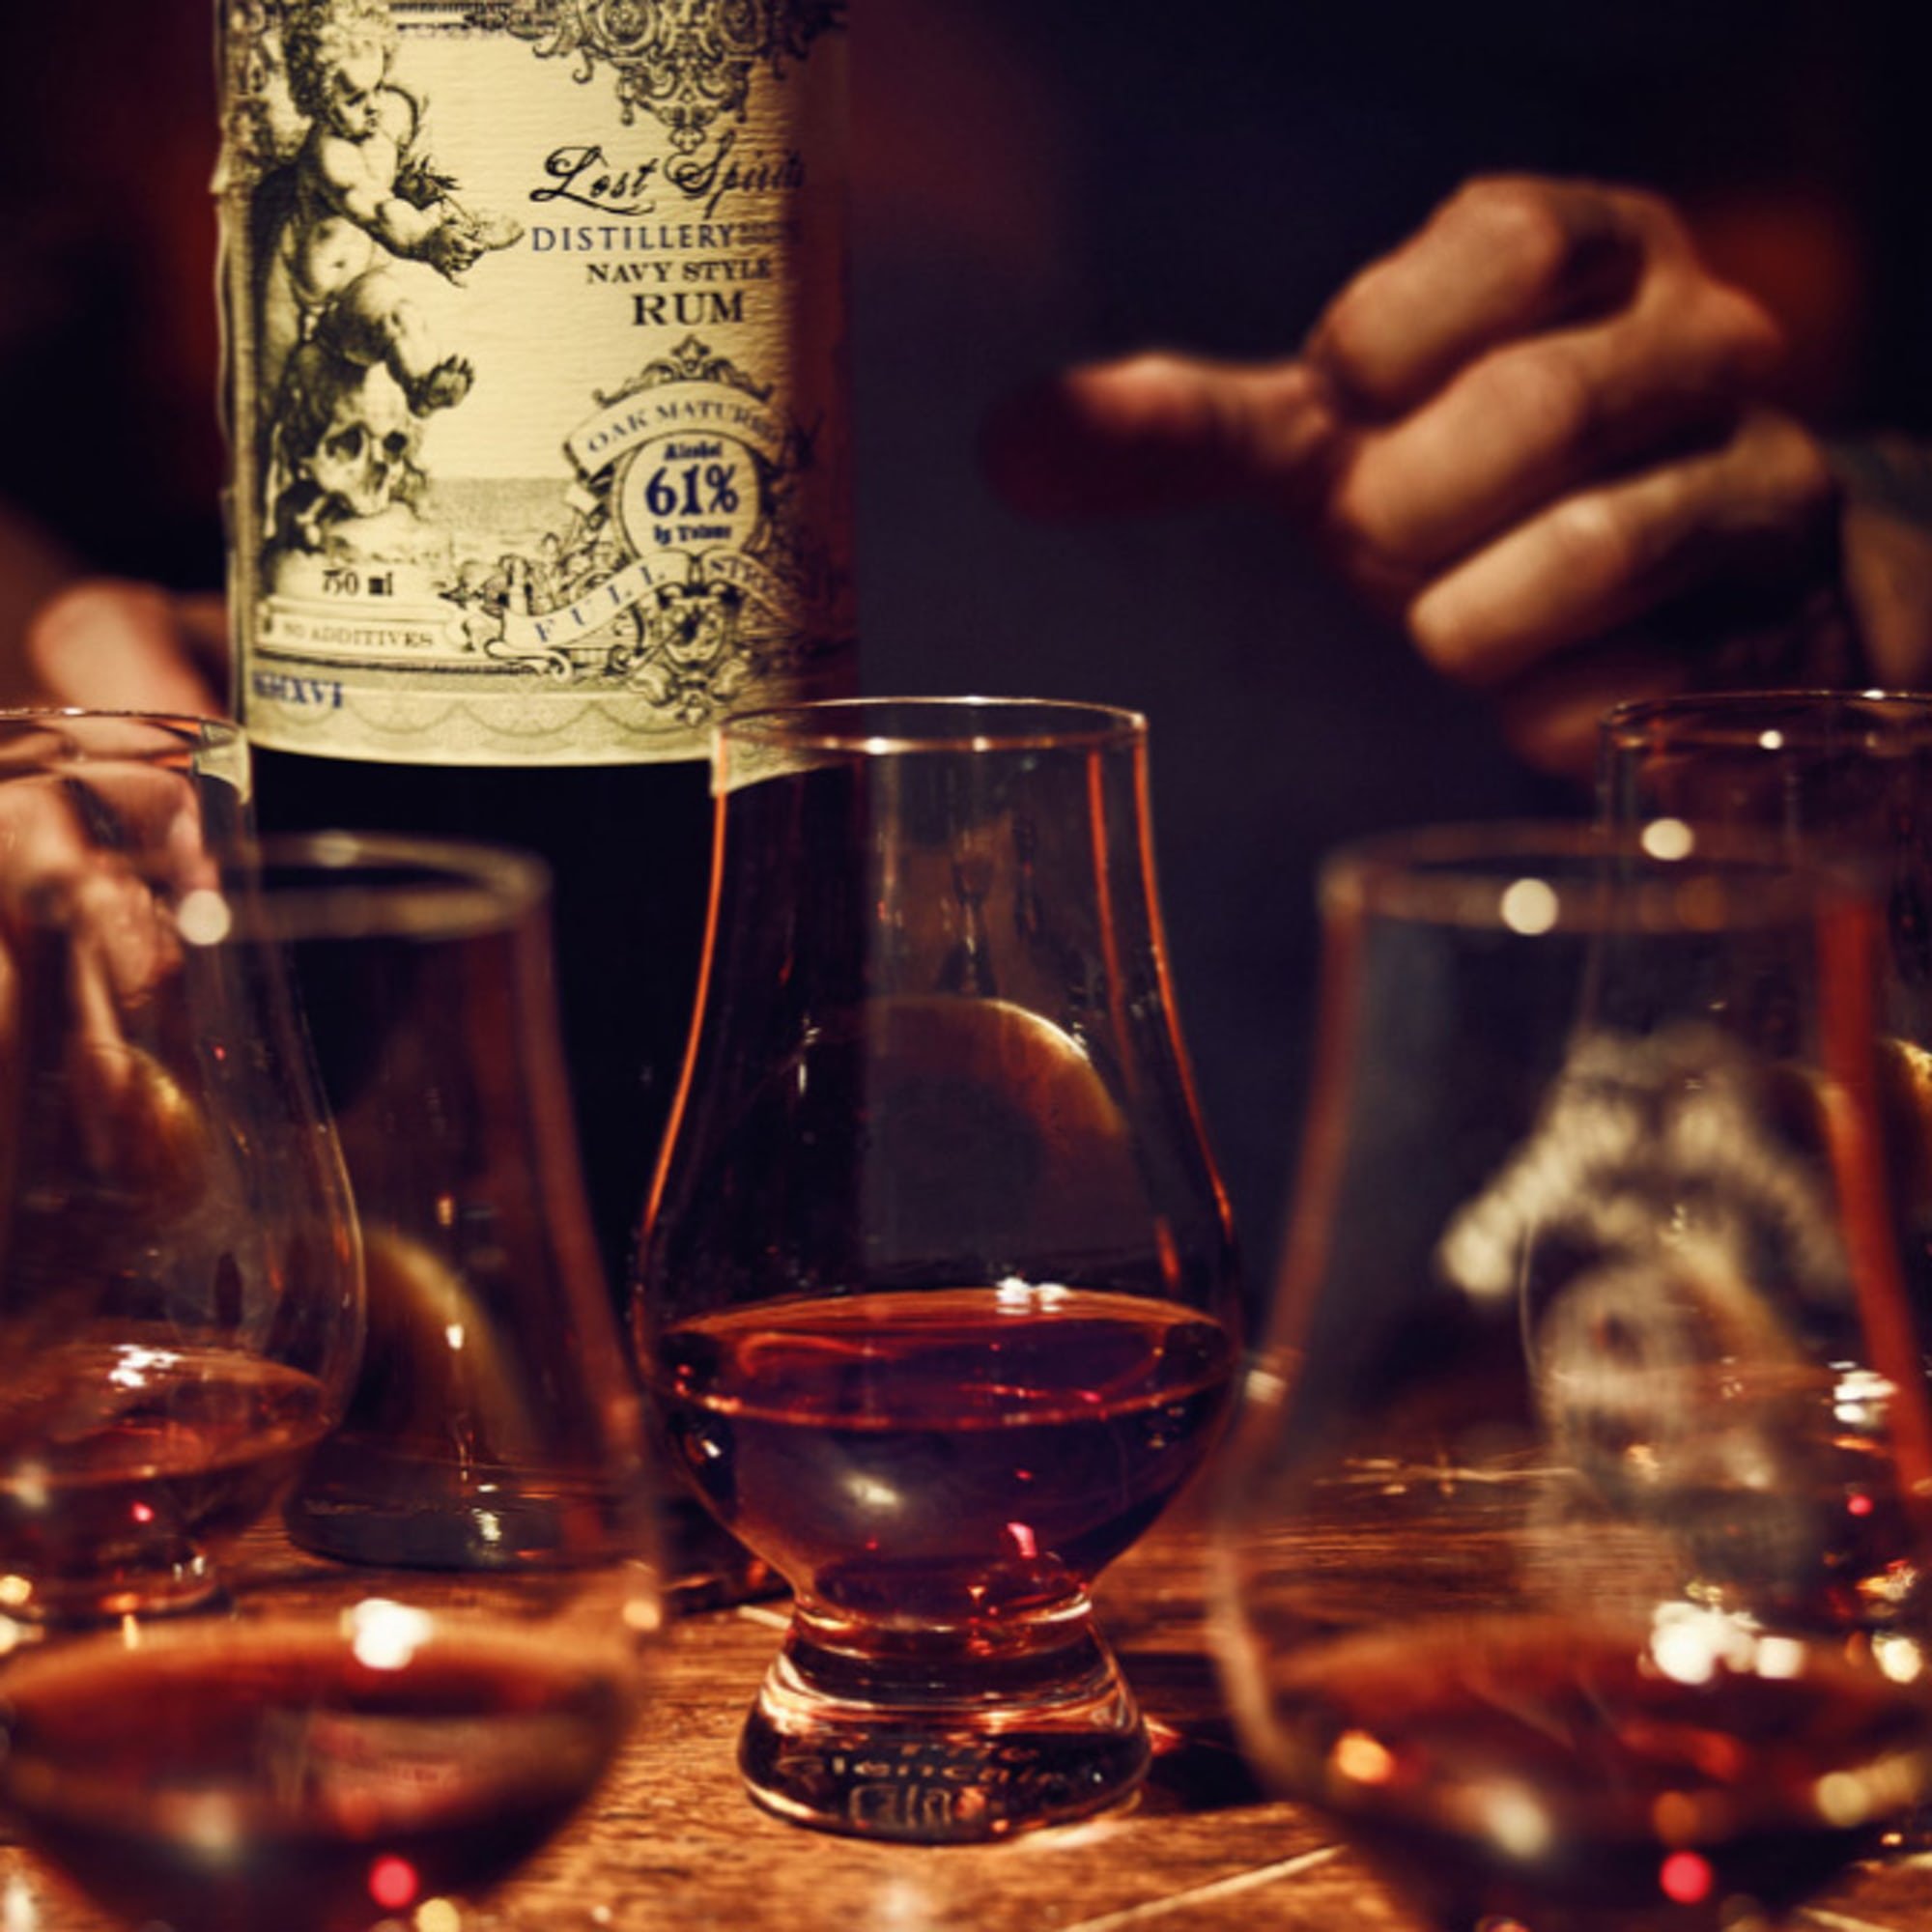 weekend round-up: some special spirits, looking into space, and a day in a new york diner Weekend Round-Up: Some Special Spirits, Looking Into Space, And A Day In A New York Diner rum